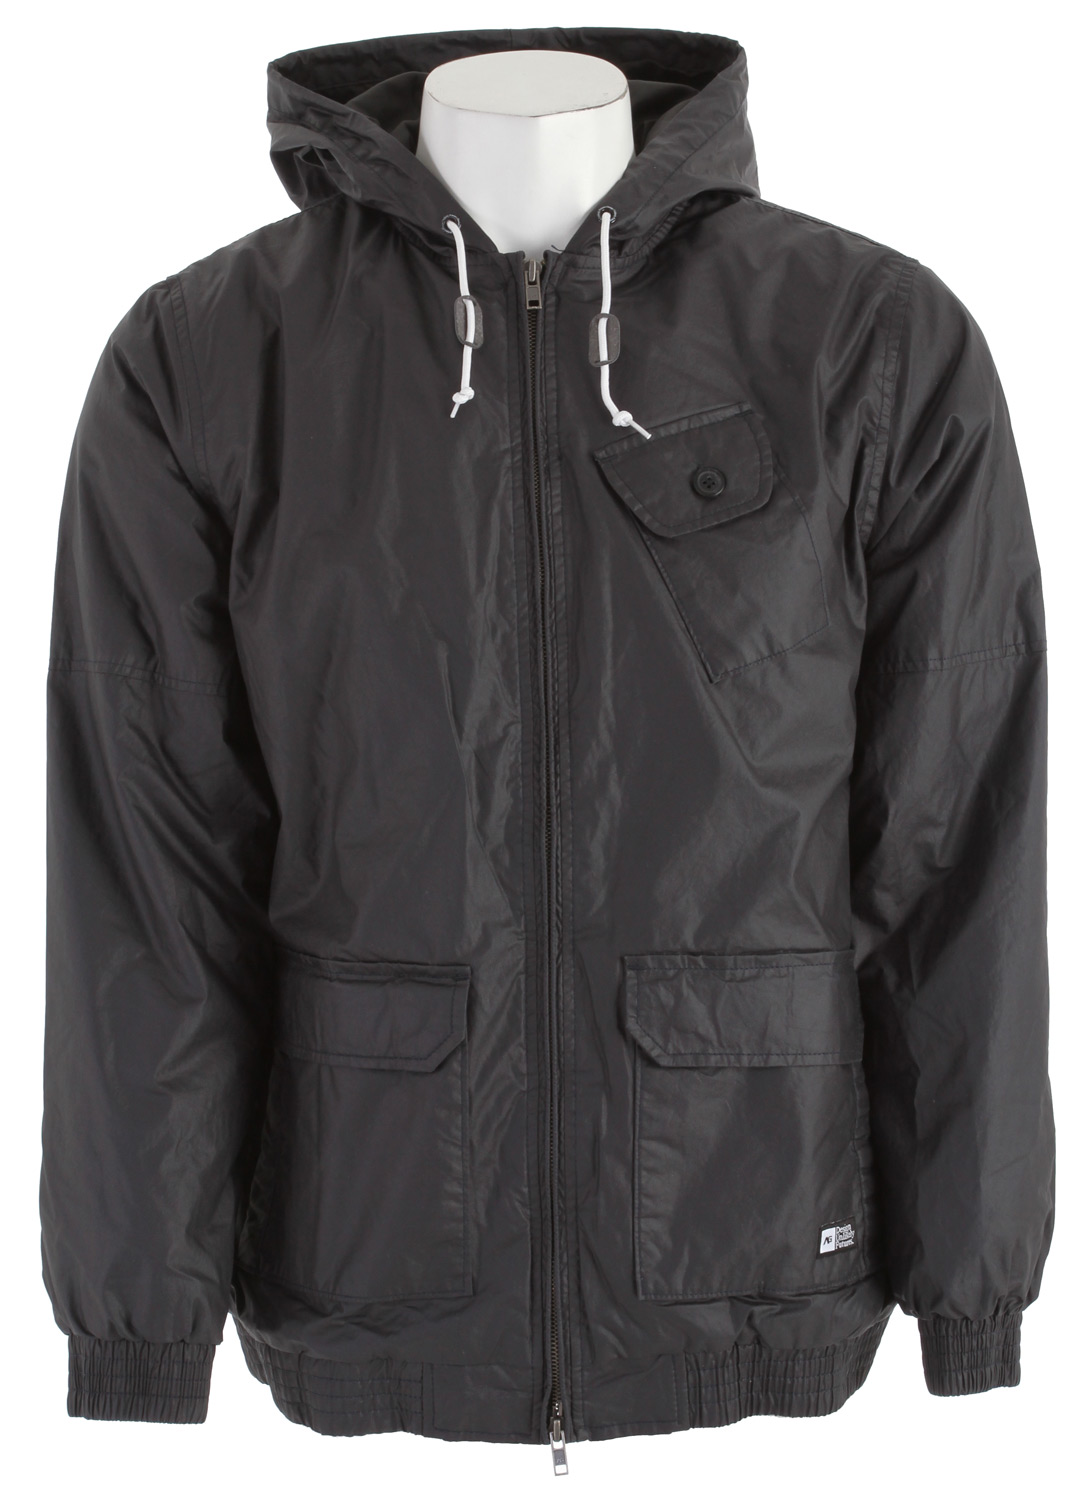 Entertainment Key Features of the Analog Portland Insulated Jacket: Regular fit 2-way zip front hooded jacket Double patch hand pockets and Asym chest pocket Gathered elastic hem and cuffs with inner pocket at left chest Coated 100% Cotton poplin Weather resistant 120gm poly insulation with solid flannel lining - $77.95